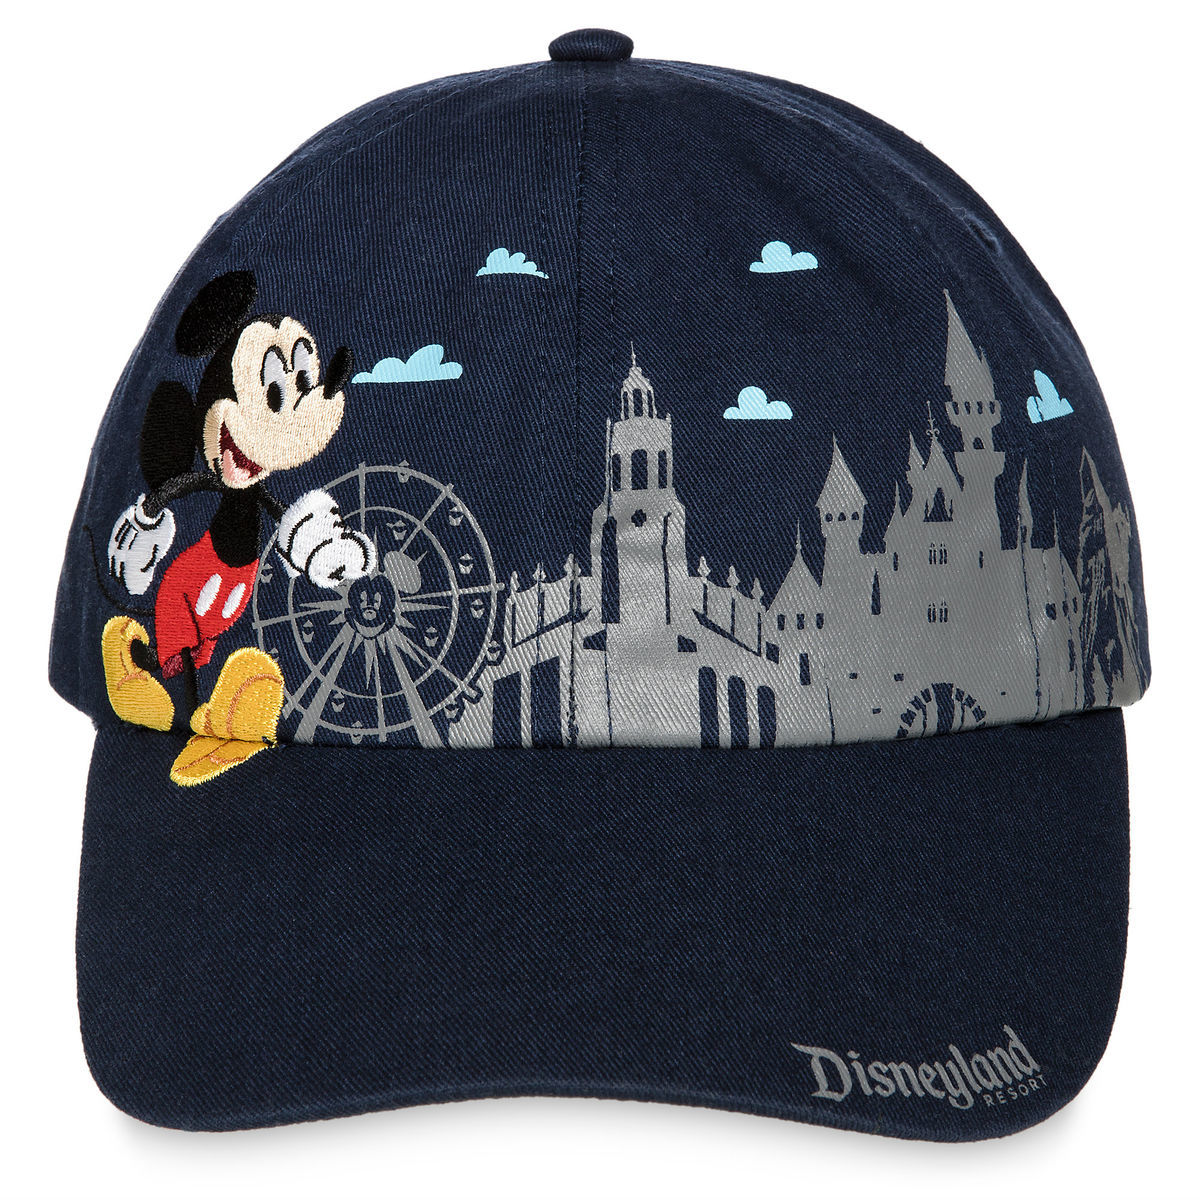 Product Image of Mickey Mouse Baseball Cap for Kids - Disneyland 2019   1 a8987abebc4